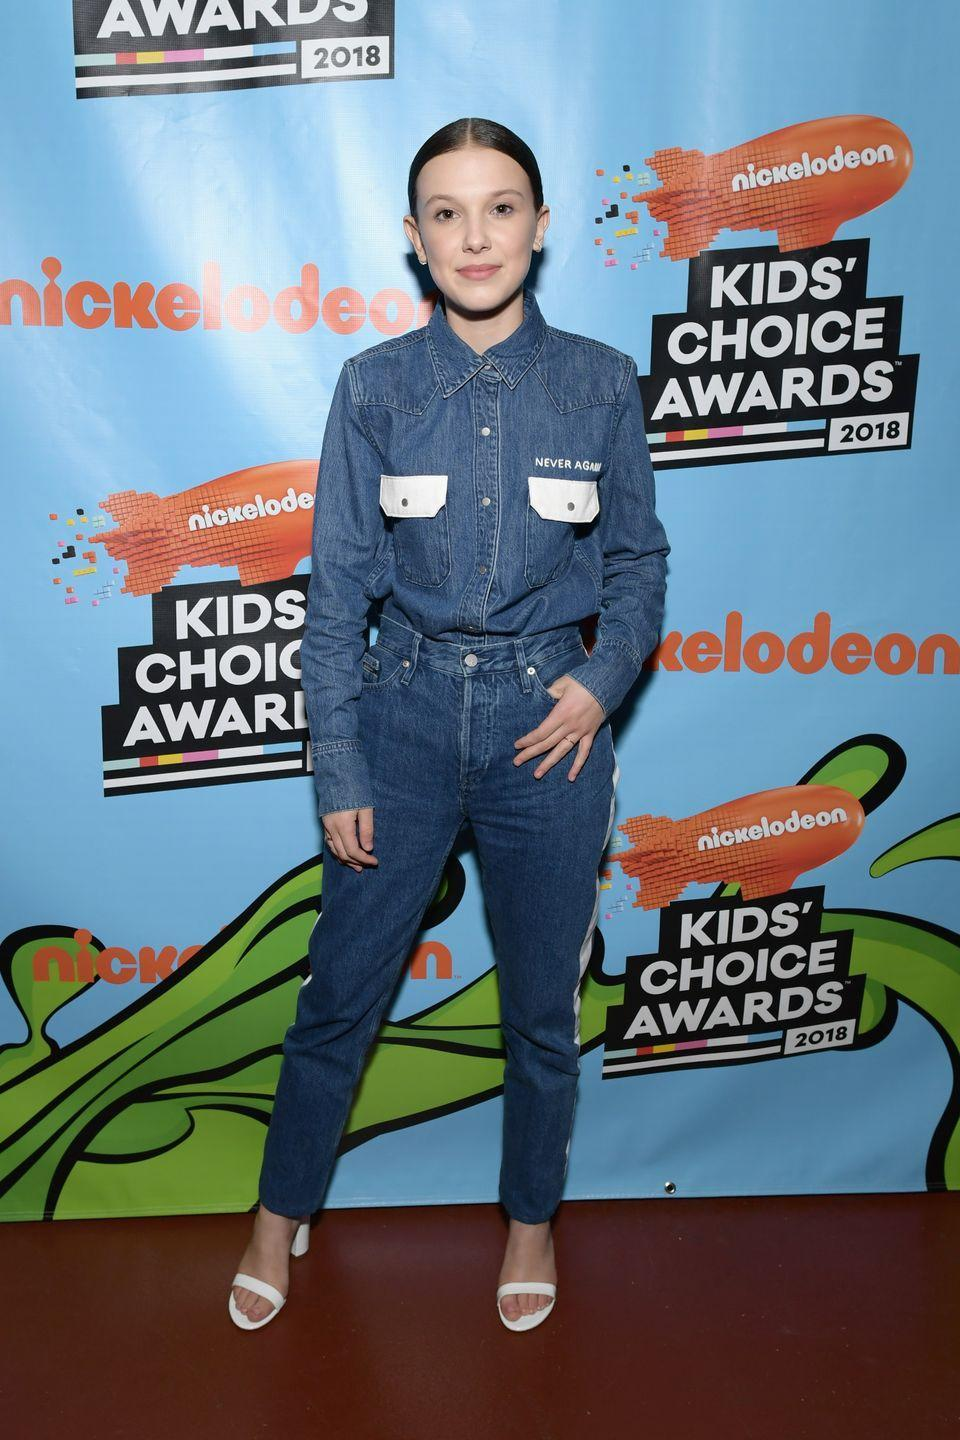 <p>Photo evidence that the secret to pulling off a denim-only outfit is all in the way you wear it. Button your shirt all the way up, then tuck it in to make it look like a chic suit that just happens to be made out of jeans.</p>